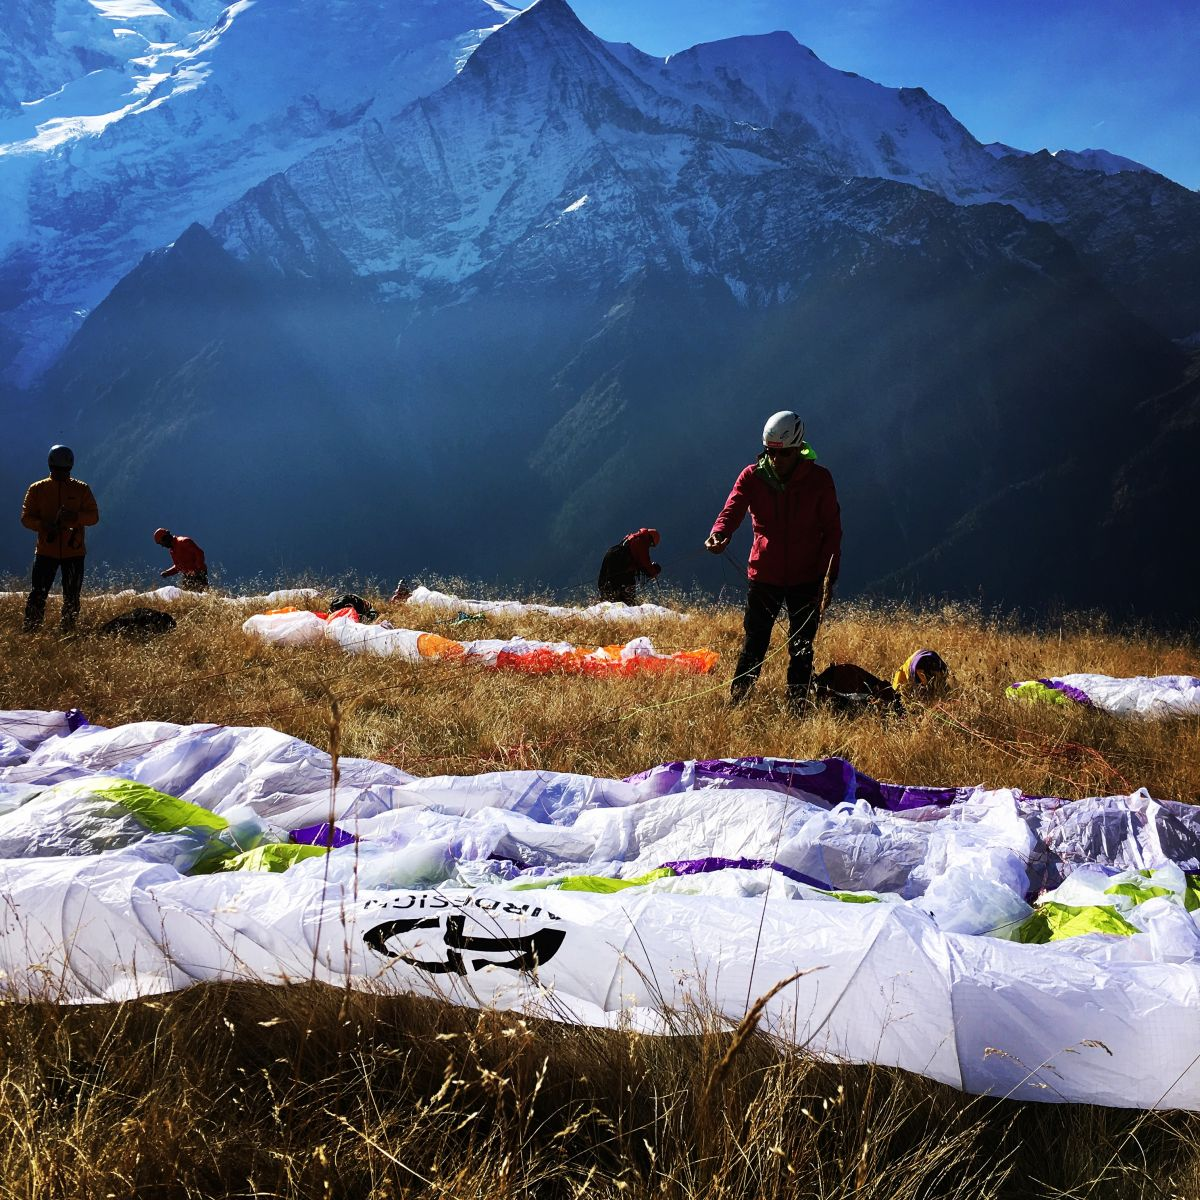 stage,monosurface,parapente,chamonix,vol,voler,monagne,bivouac,debutant,initiation, progression,ufo,moniteur